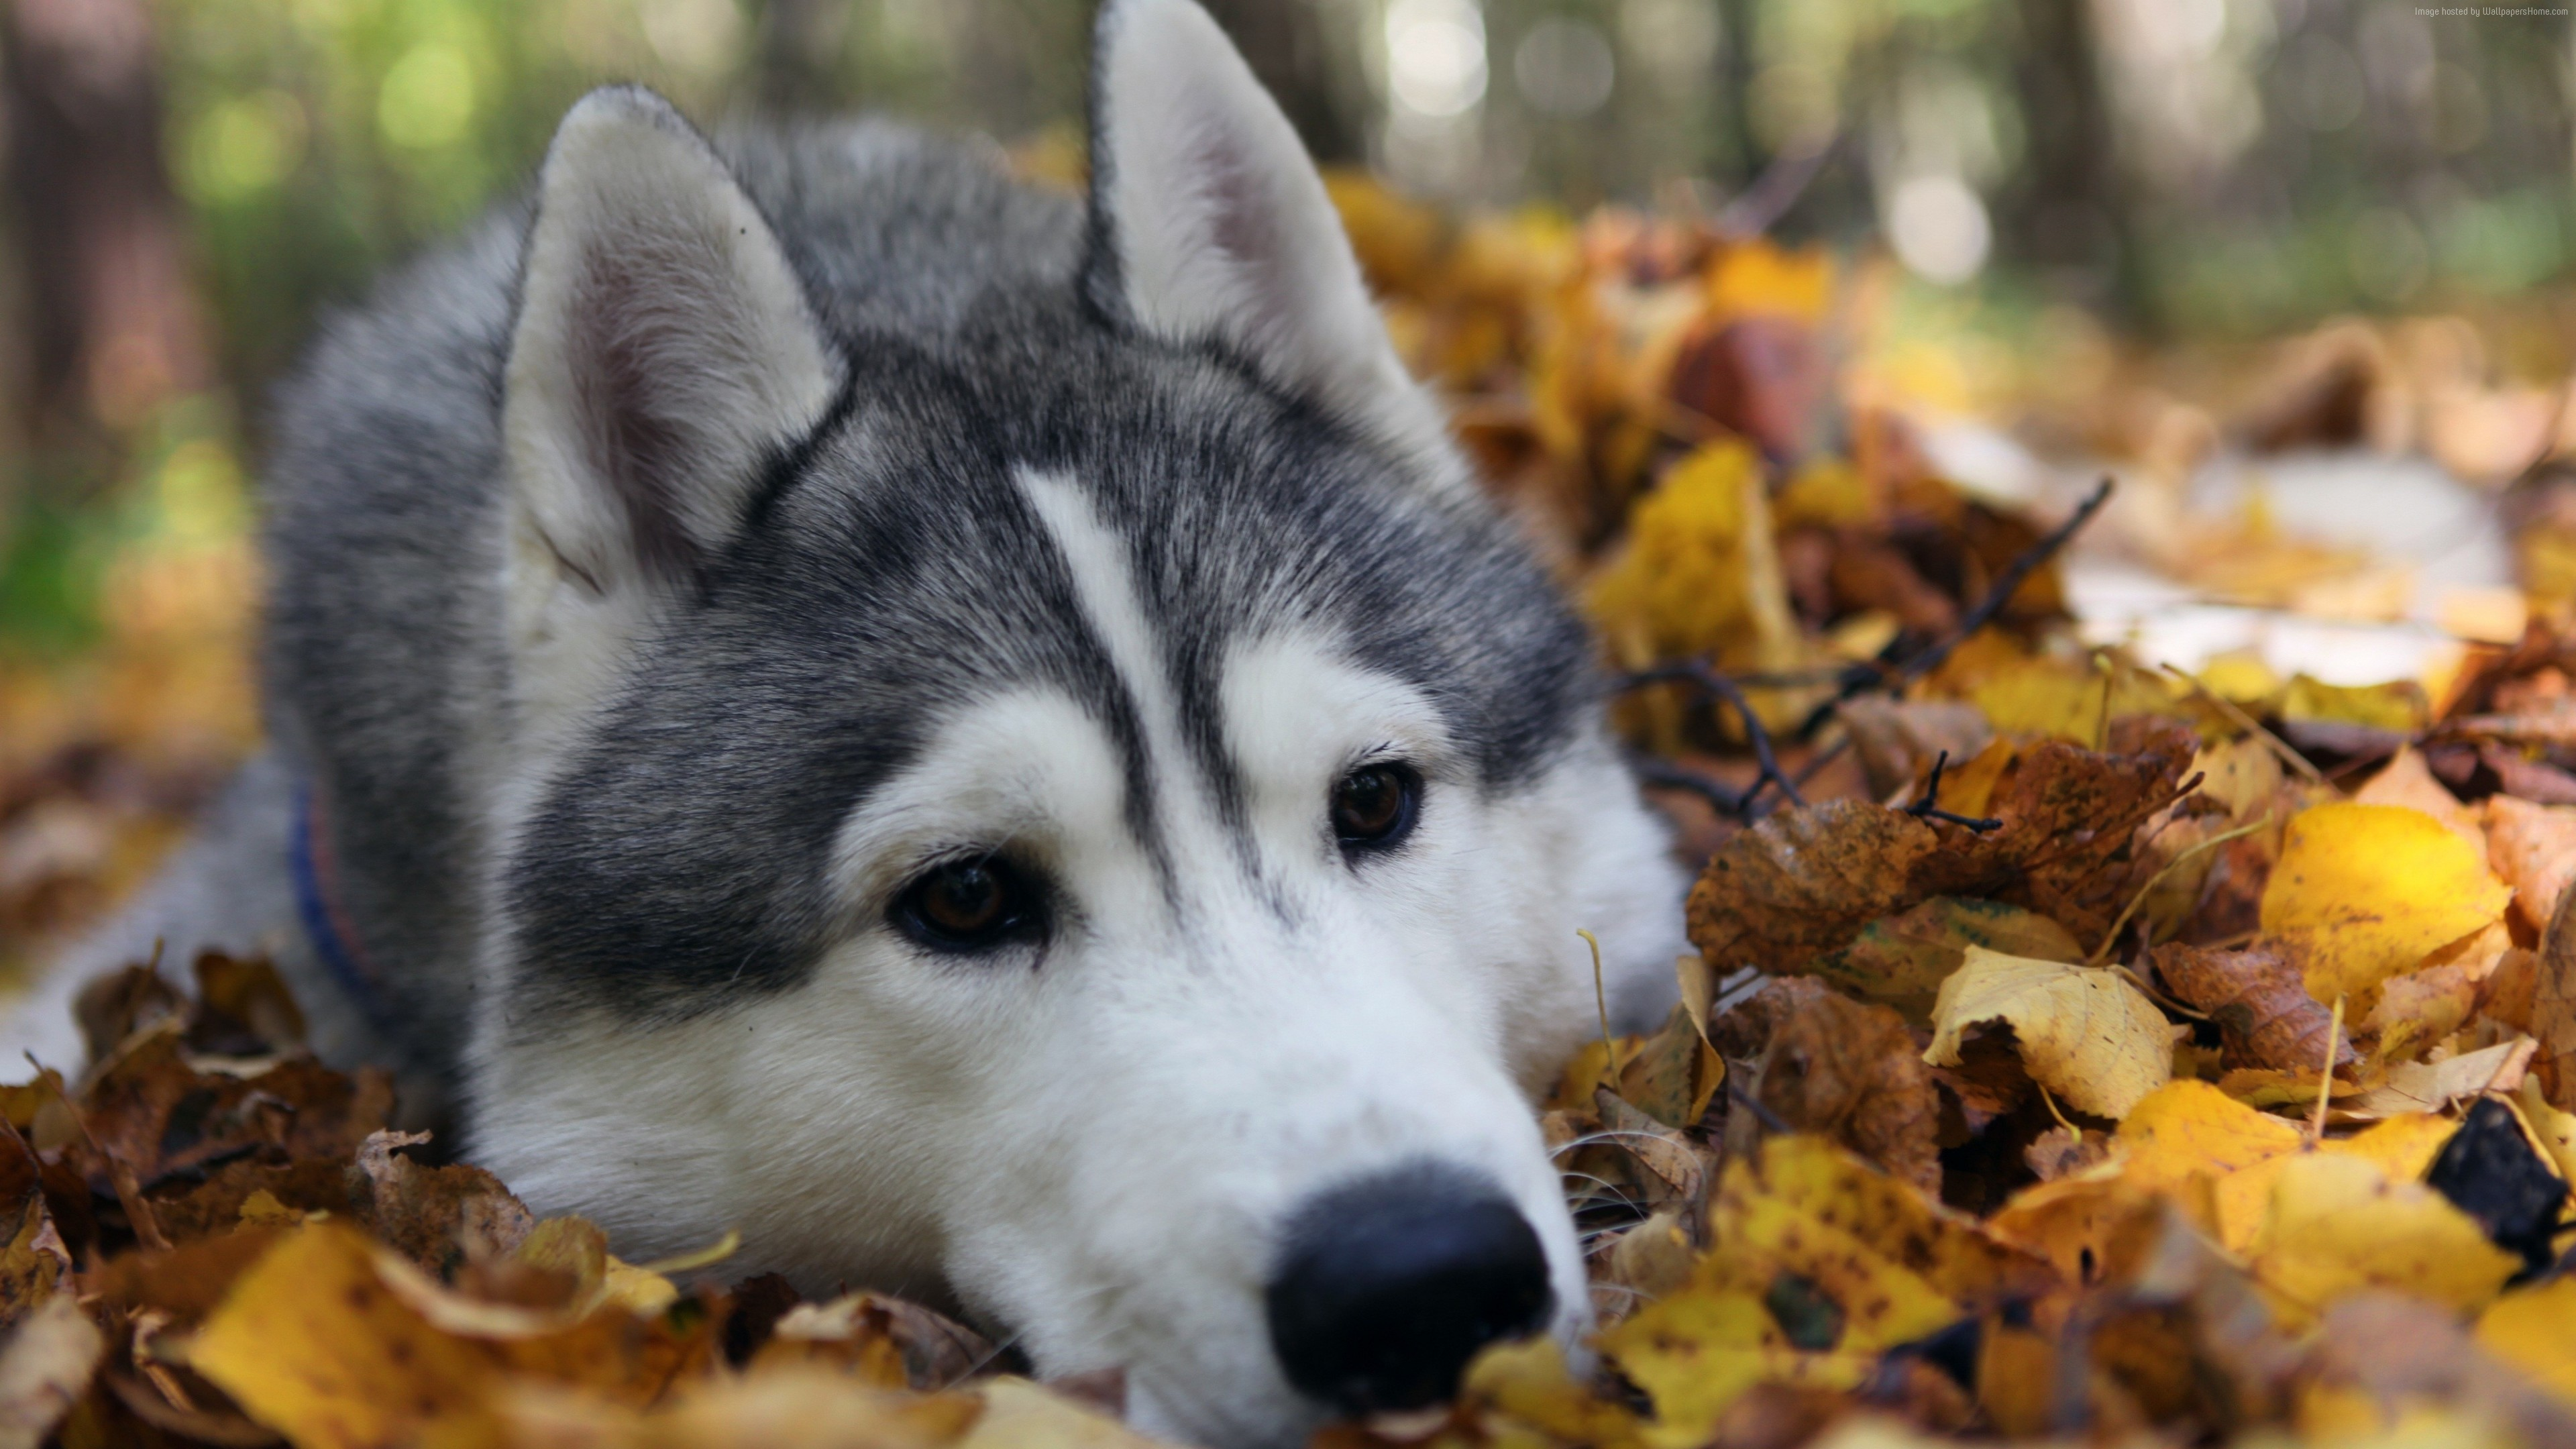 Wallpaper Husky, dog, cute animals, funny, Animals